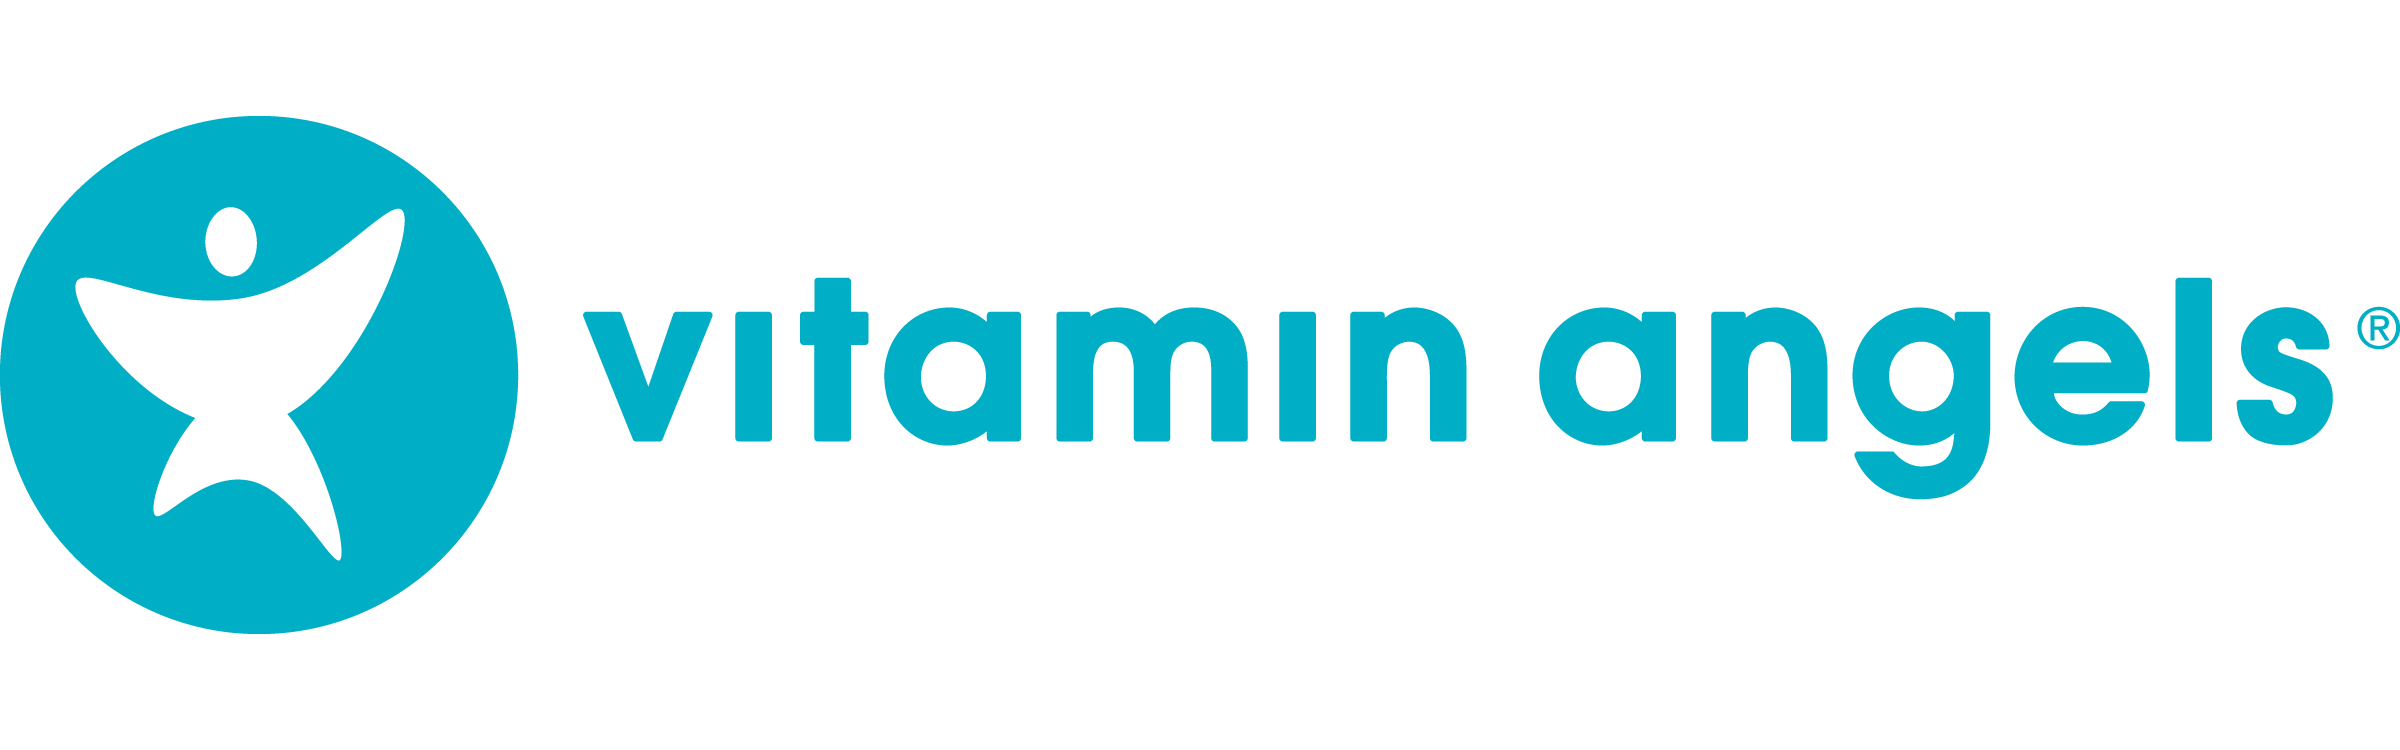 Primary_Vitamin_Angels_logo_2017.png